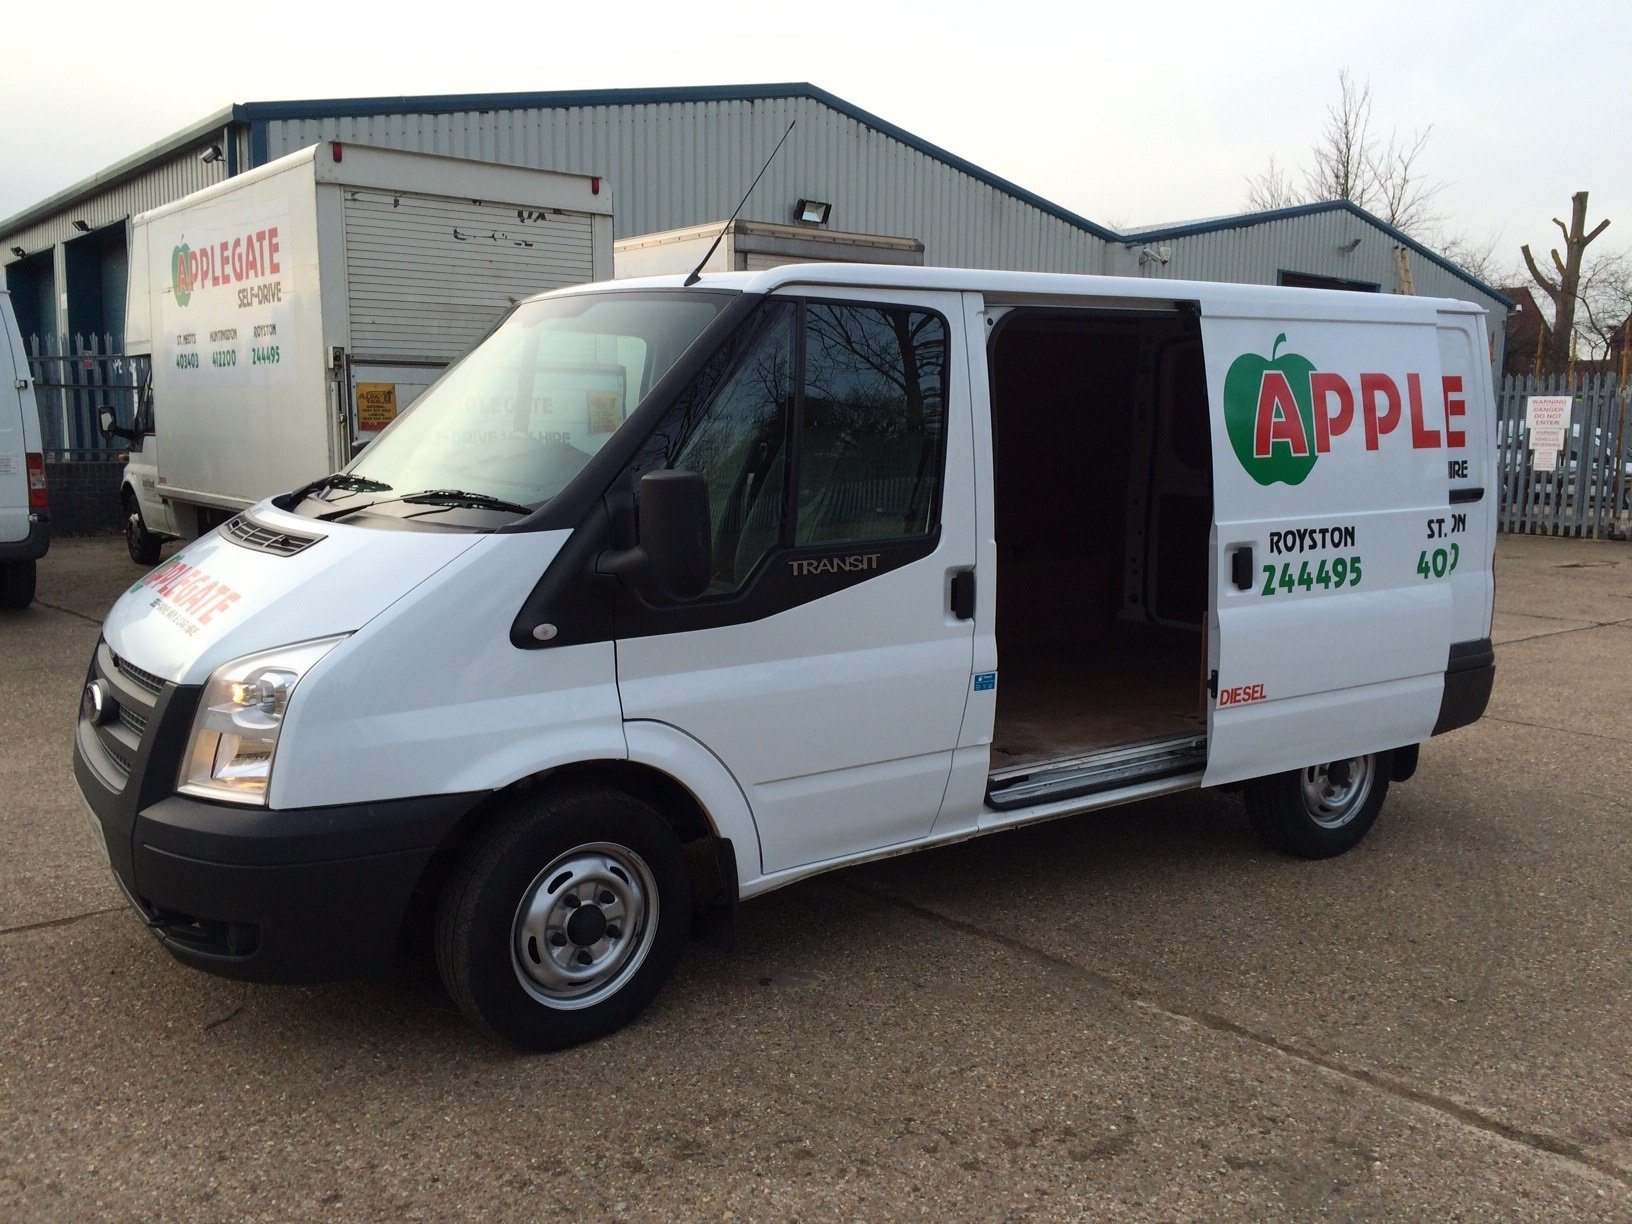 Transit van for relocation